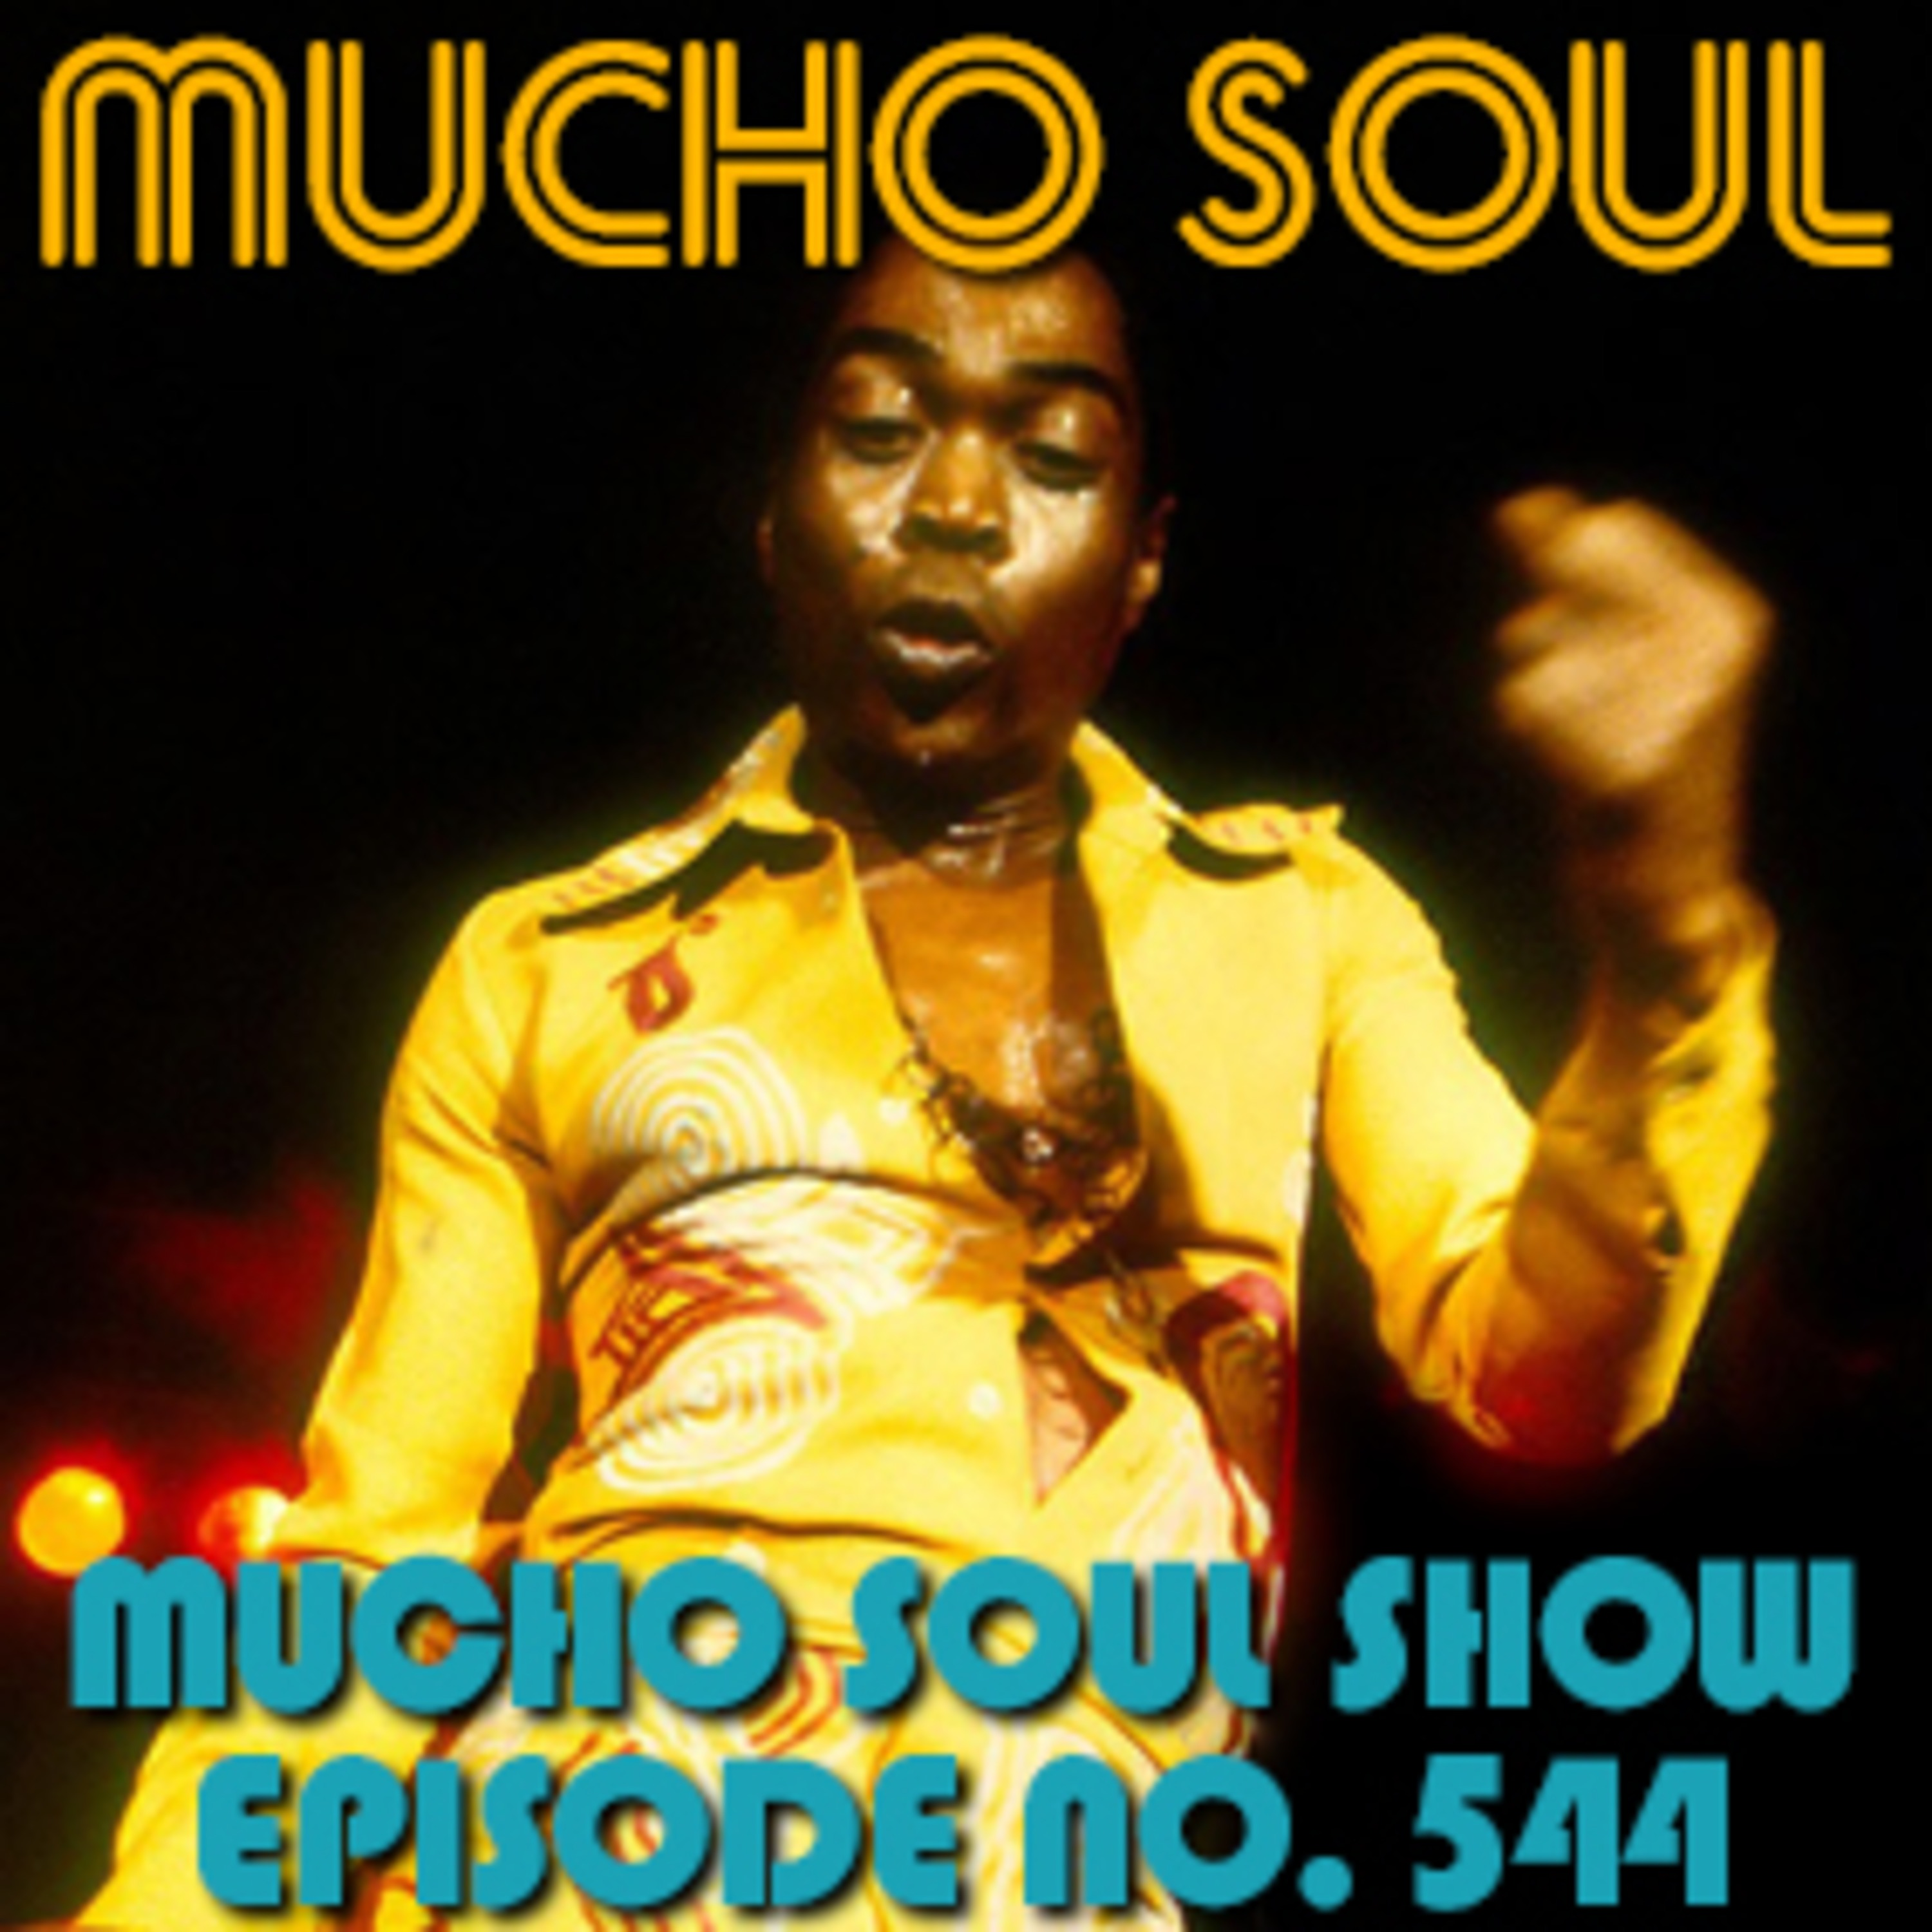 Ady Suleiman Longing For Your Love mucho soul show no. 481